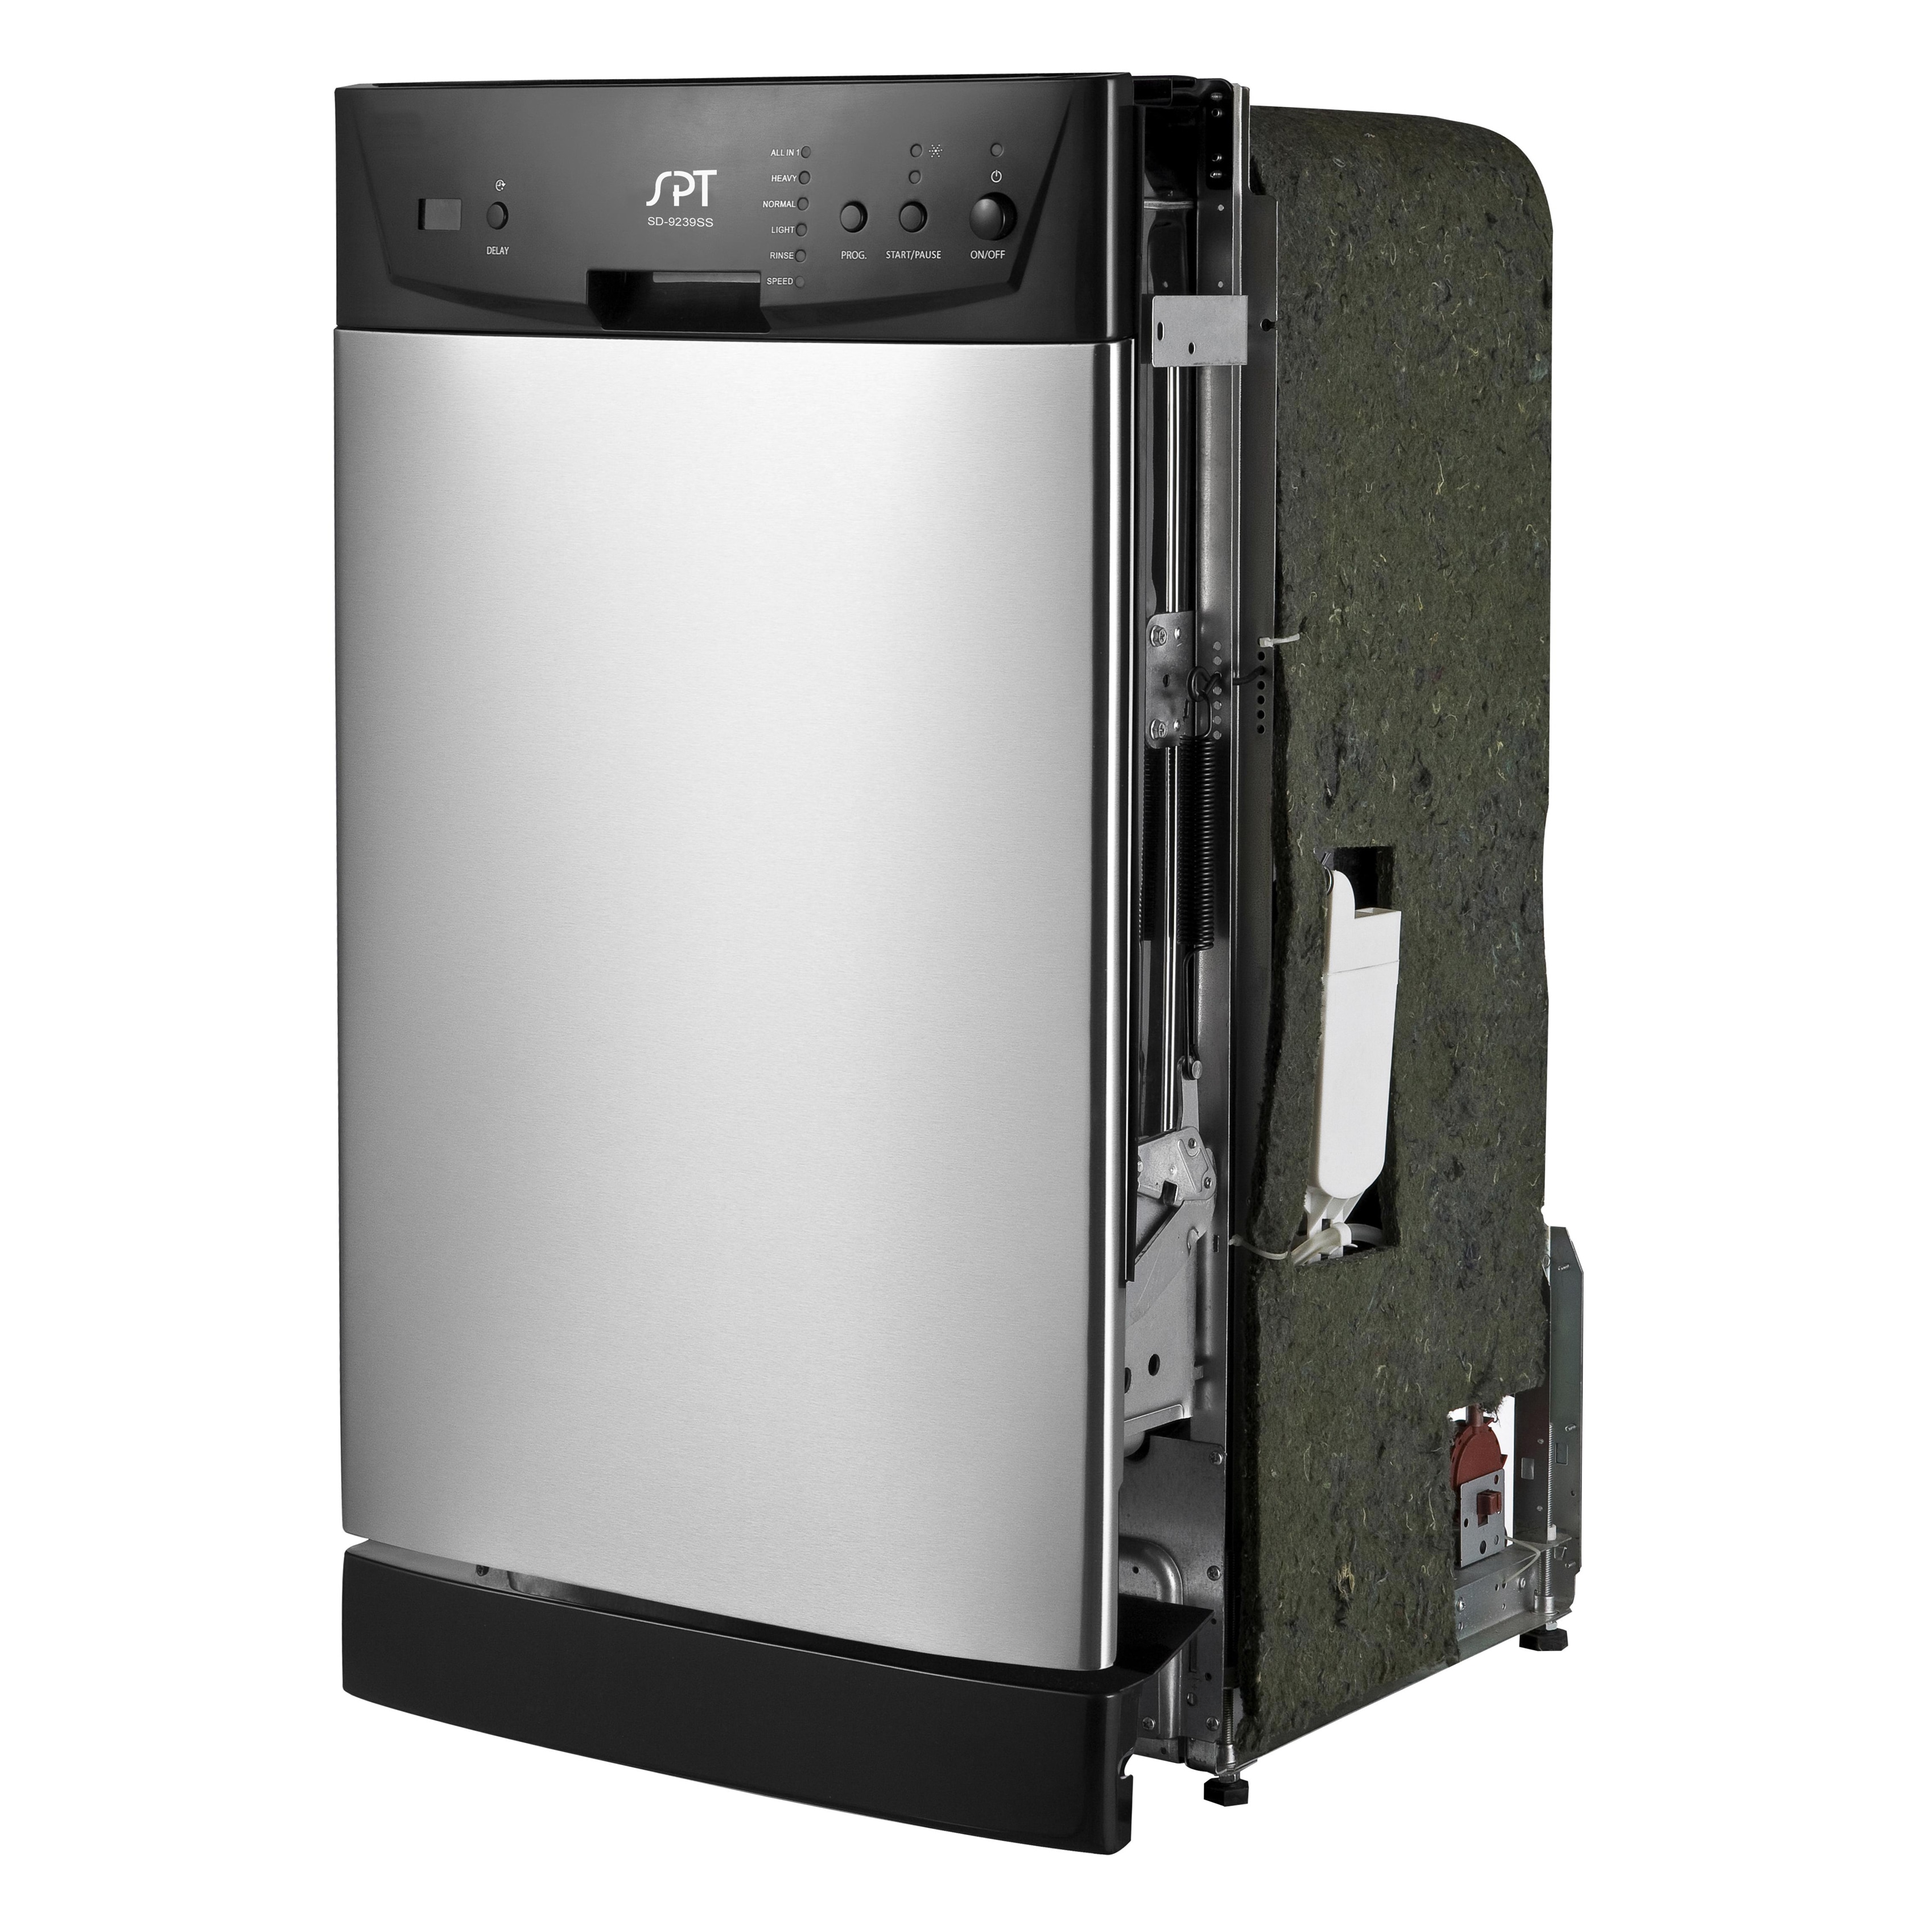 reviews p hei appliances wid portable countertop prod qlt dishwashers spin whirlpool dishwasher